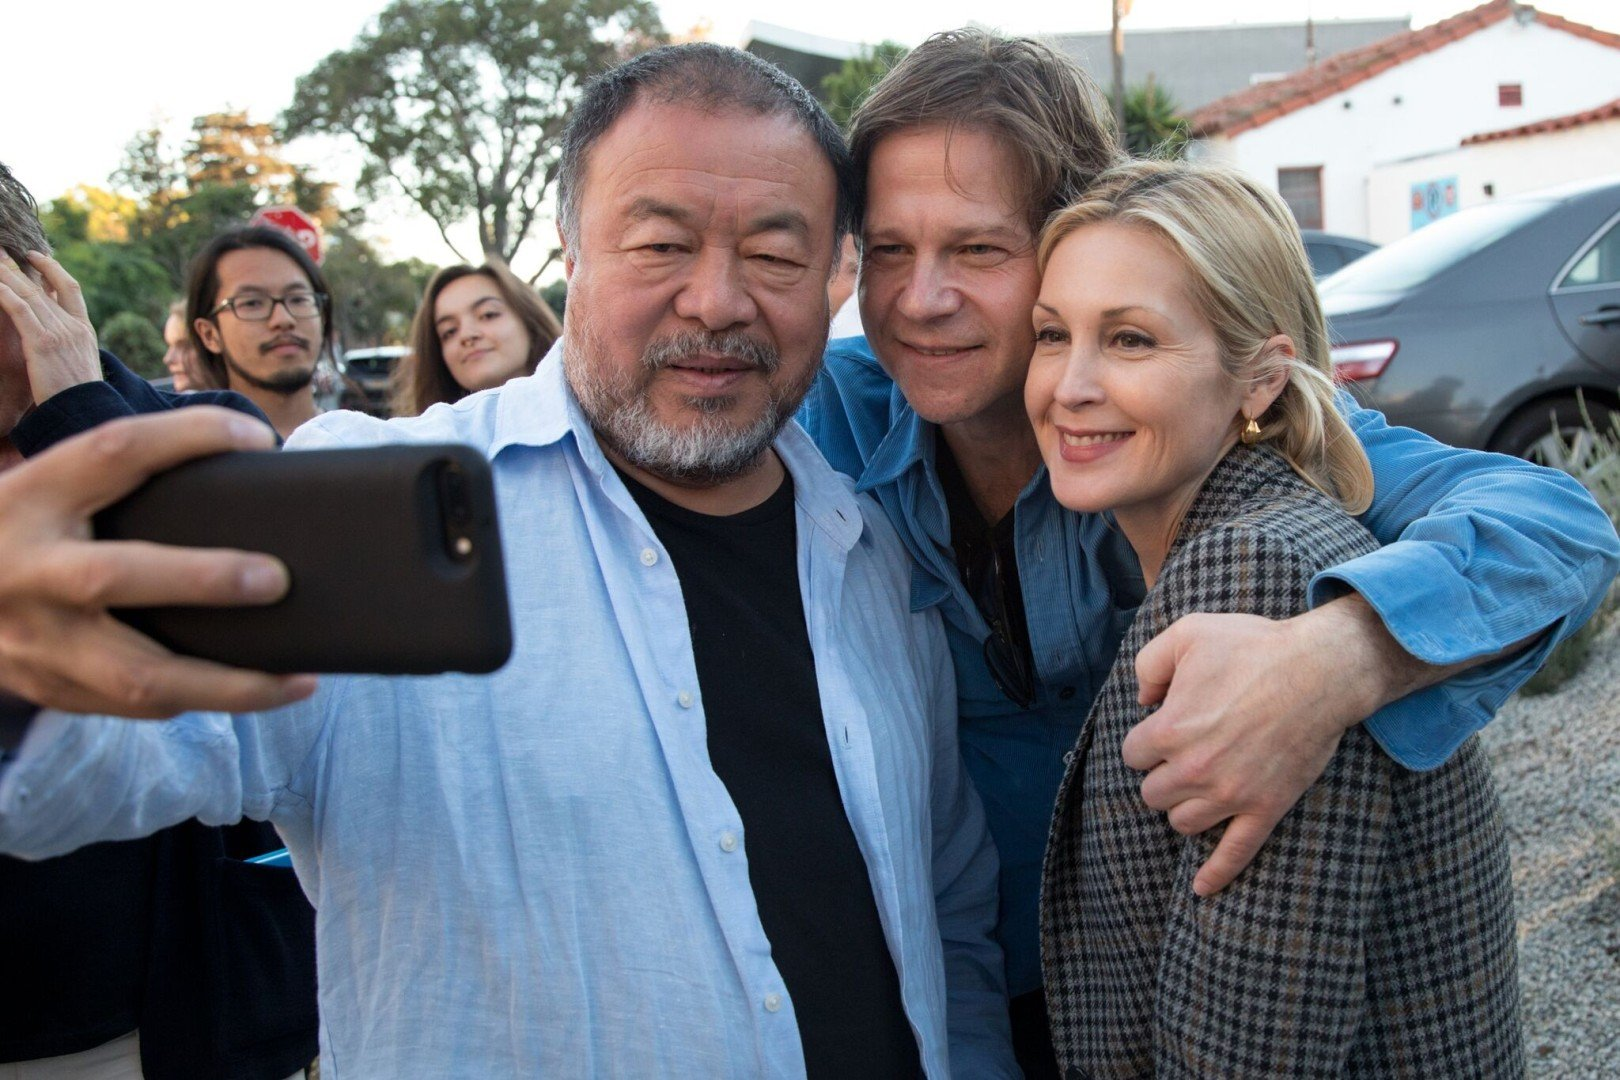 cff418c49 With three exhibitions, Ai Weiwei arrives in Los Angeles arts scene with a  bang | South China Morning Post